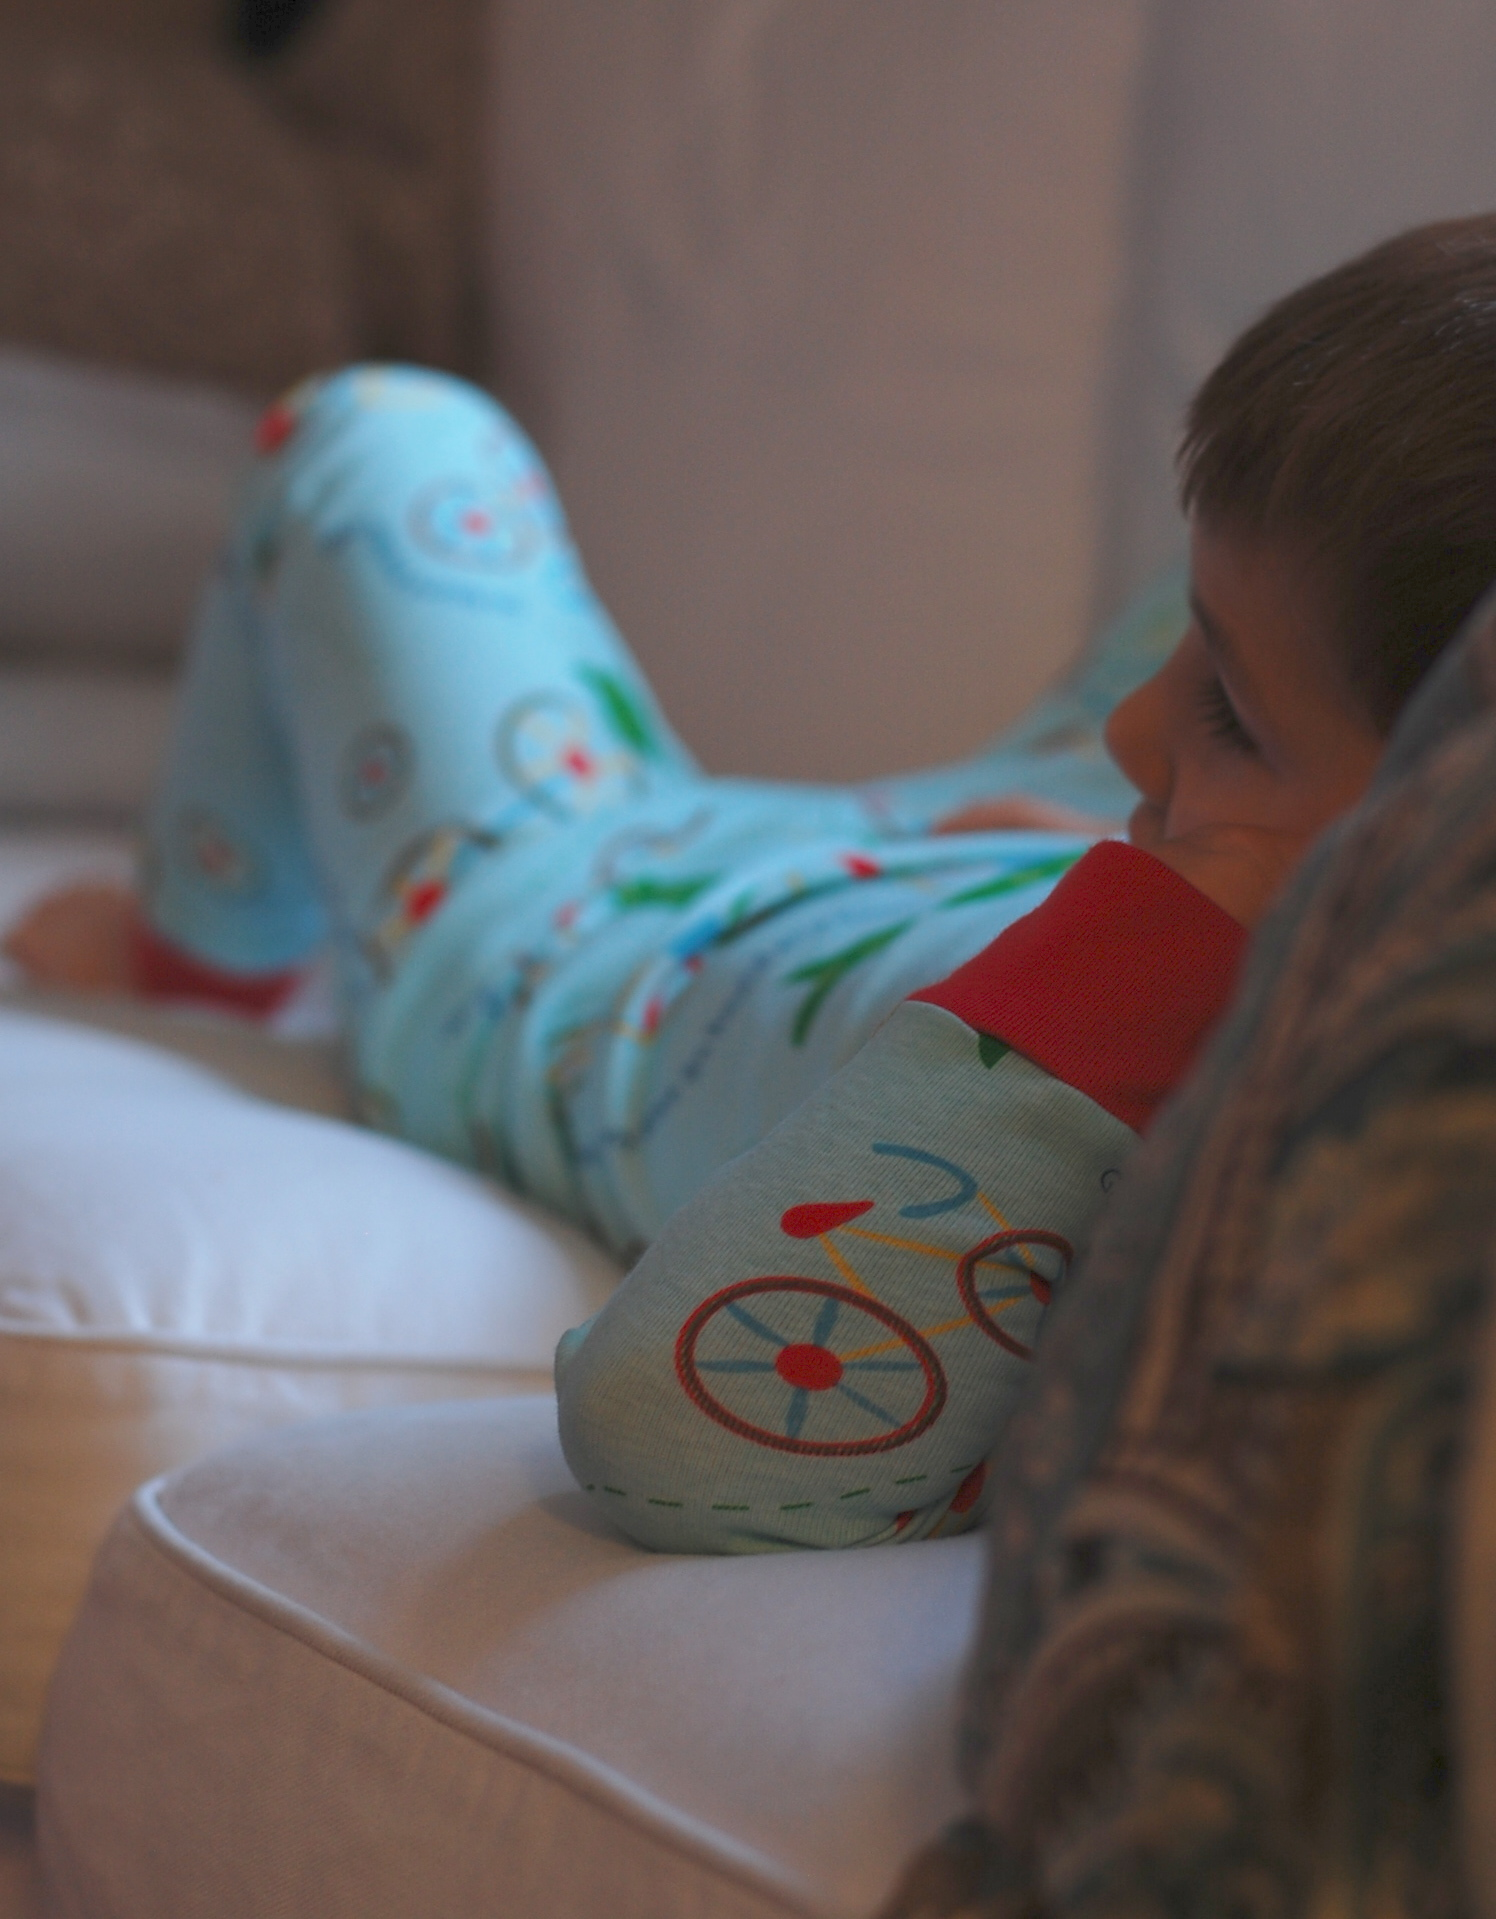 avoiding flame retardant chemicals in children's sleepwear: new jammies giveaway